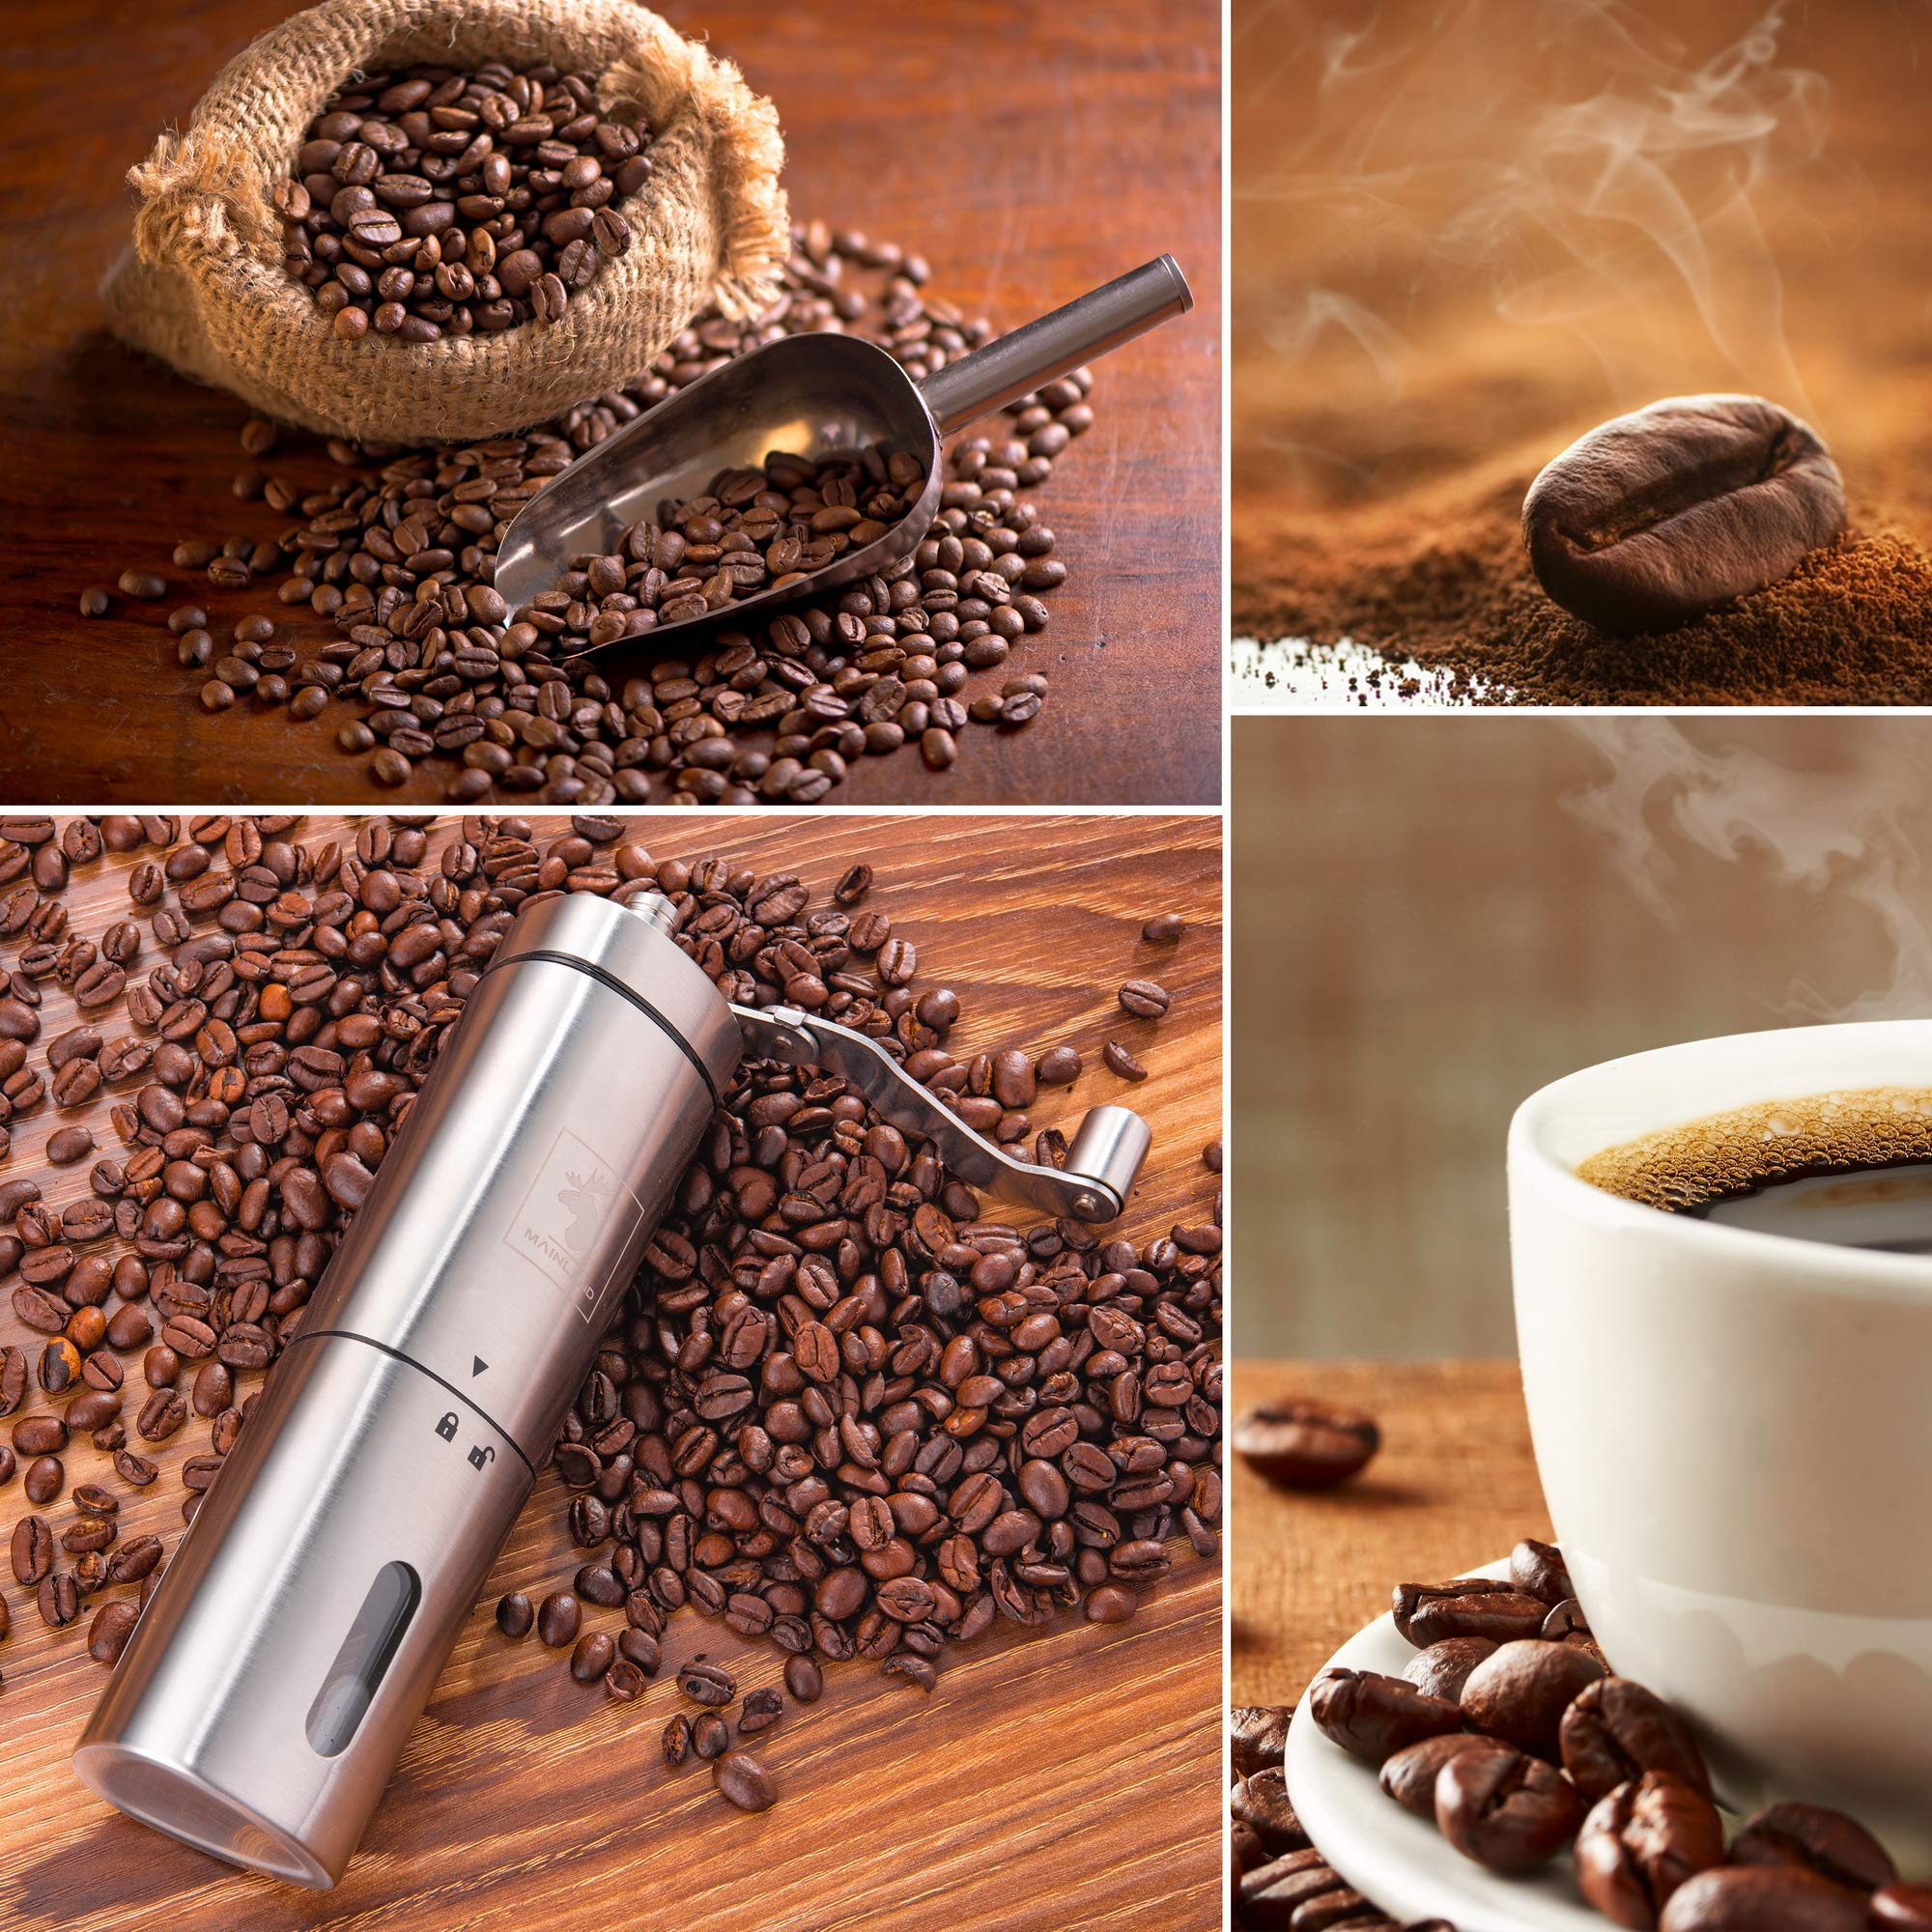 Manual Coffee Grinder by Mainland (Hand Held) Adjustable Fine, Medium, Coarse Grounds | Ceramic Burr Mill for Whole Bean Grinding | Home Kitchen, Office, Travel by Mainland (Image #7)